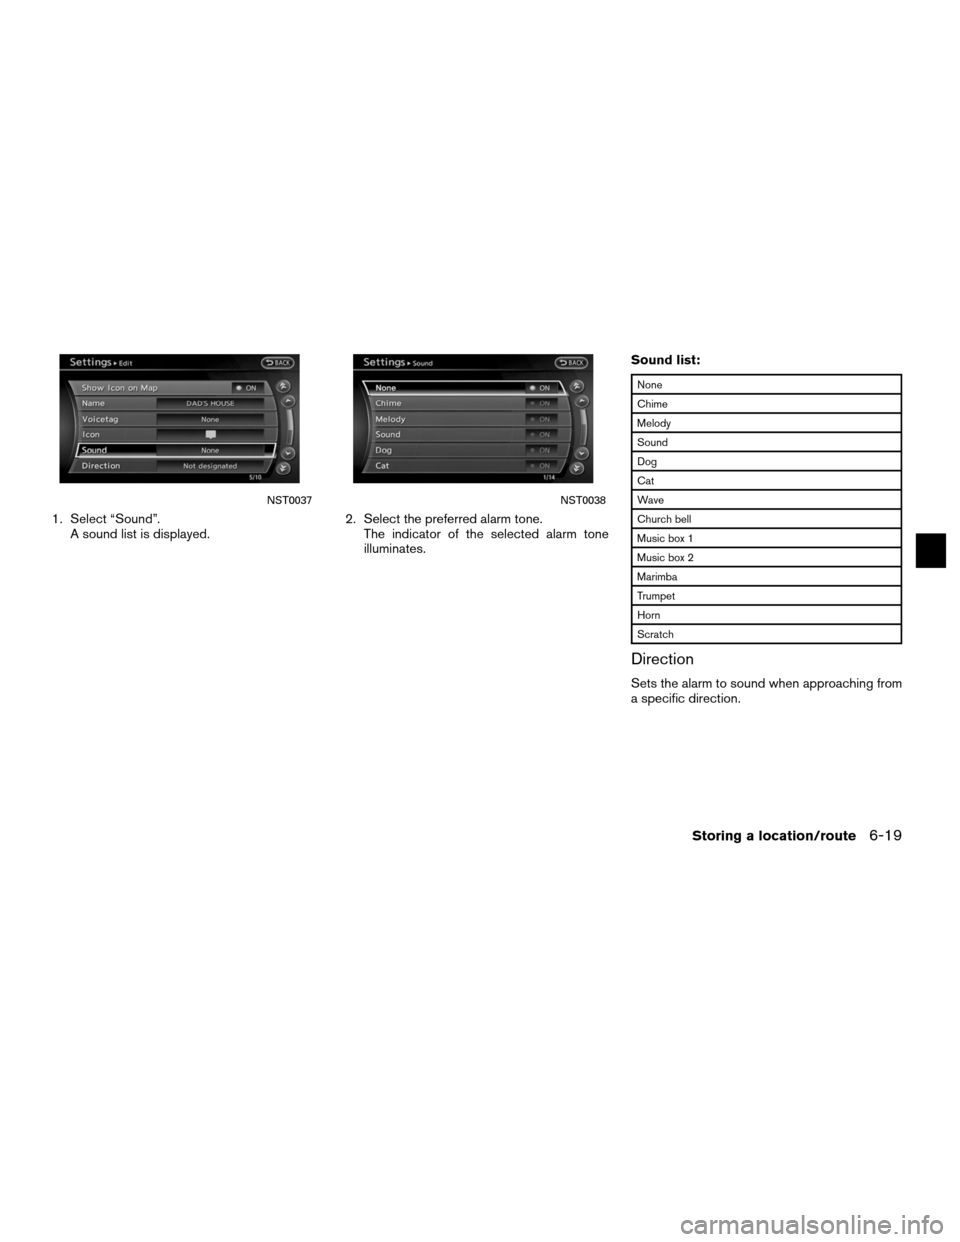 NISSAN ALTIMA HYBRID 2011 L32A / 4.G Navigation Manual, Page 169